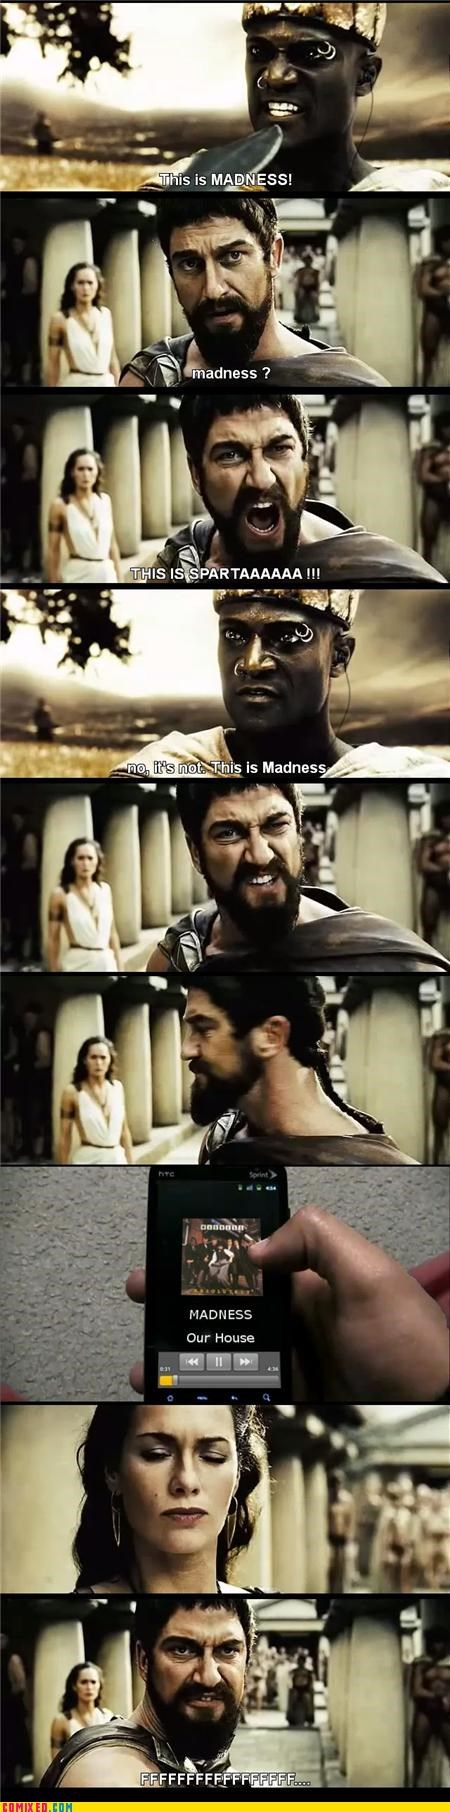 300 Harry Potter madness our house sparta